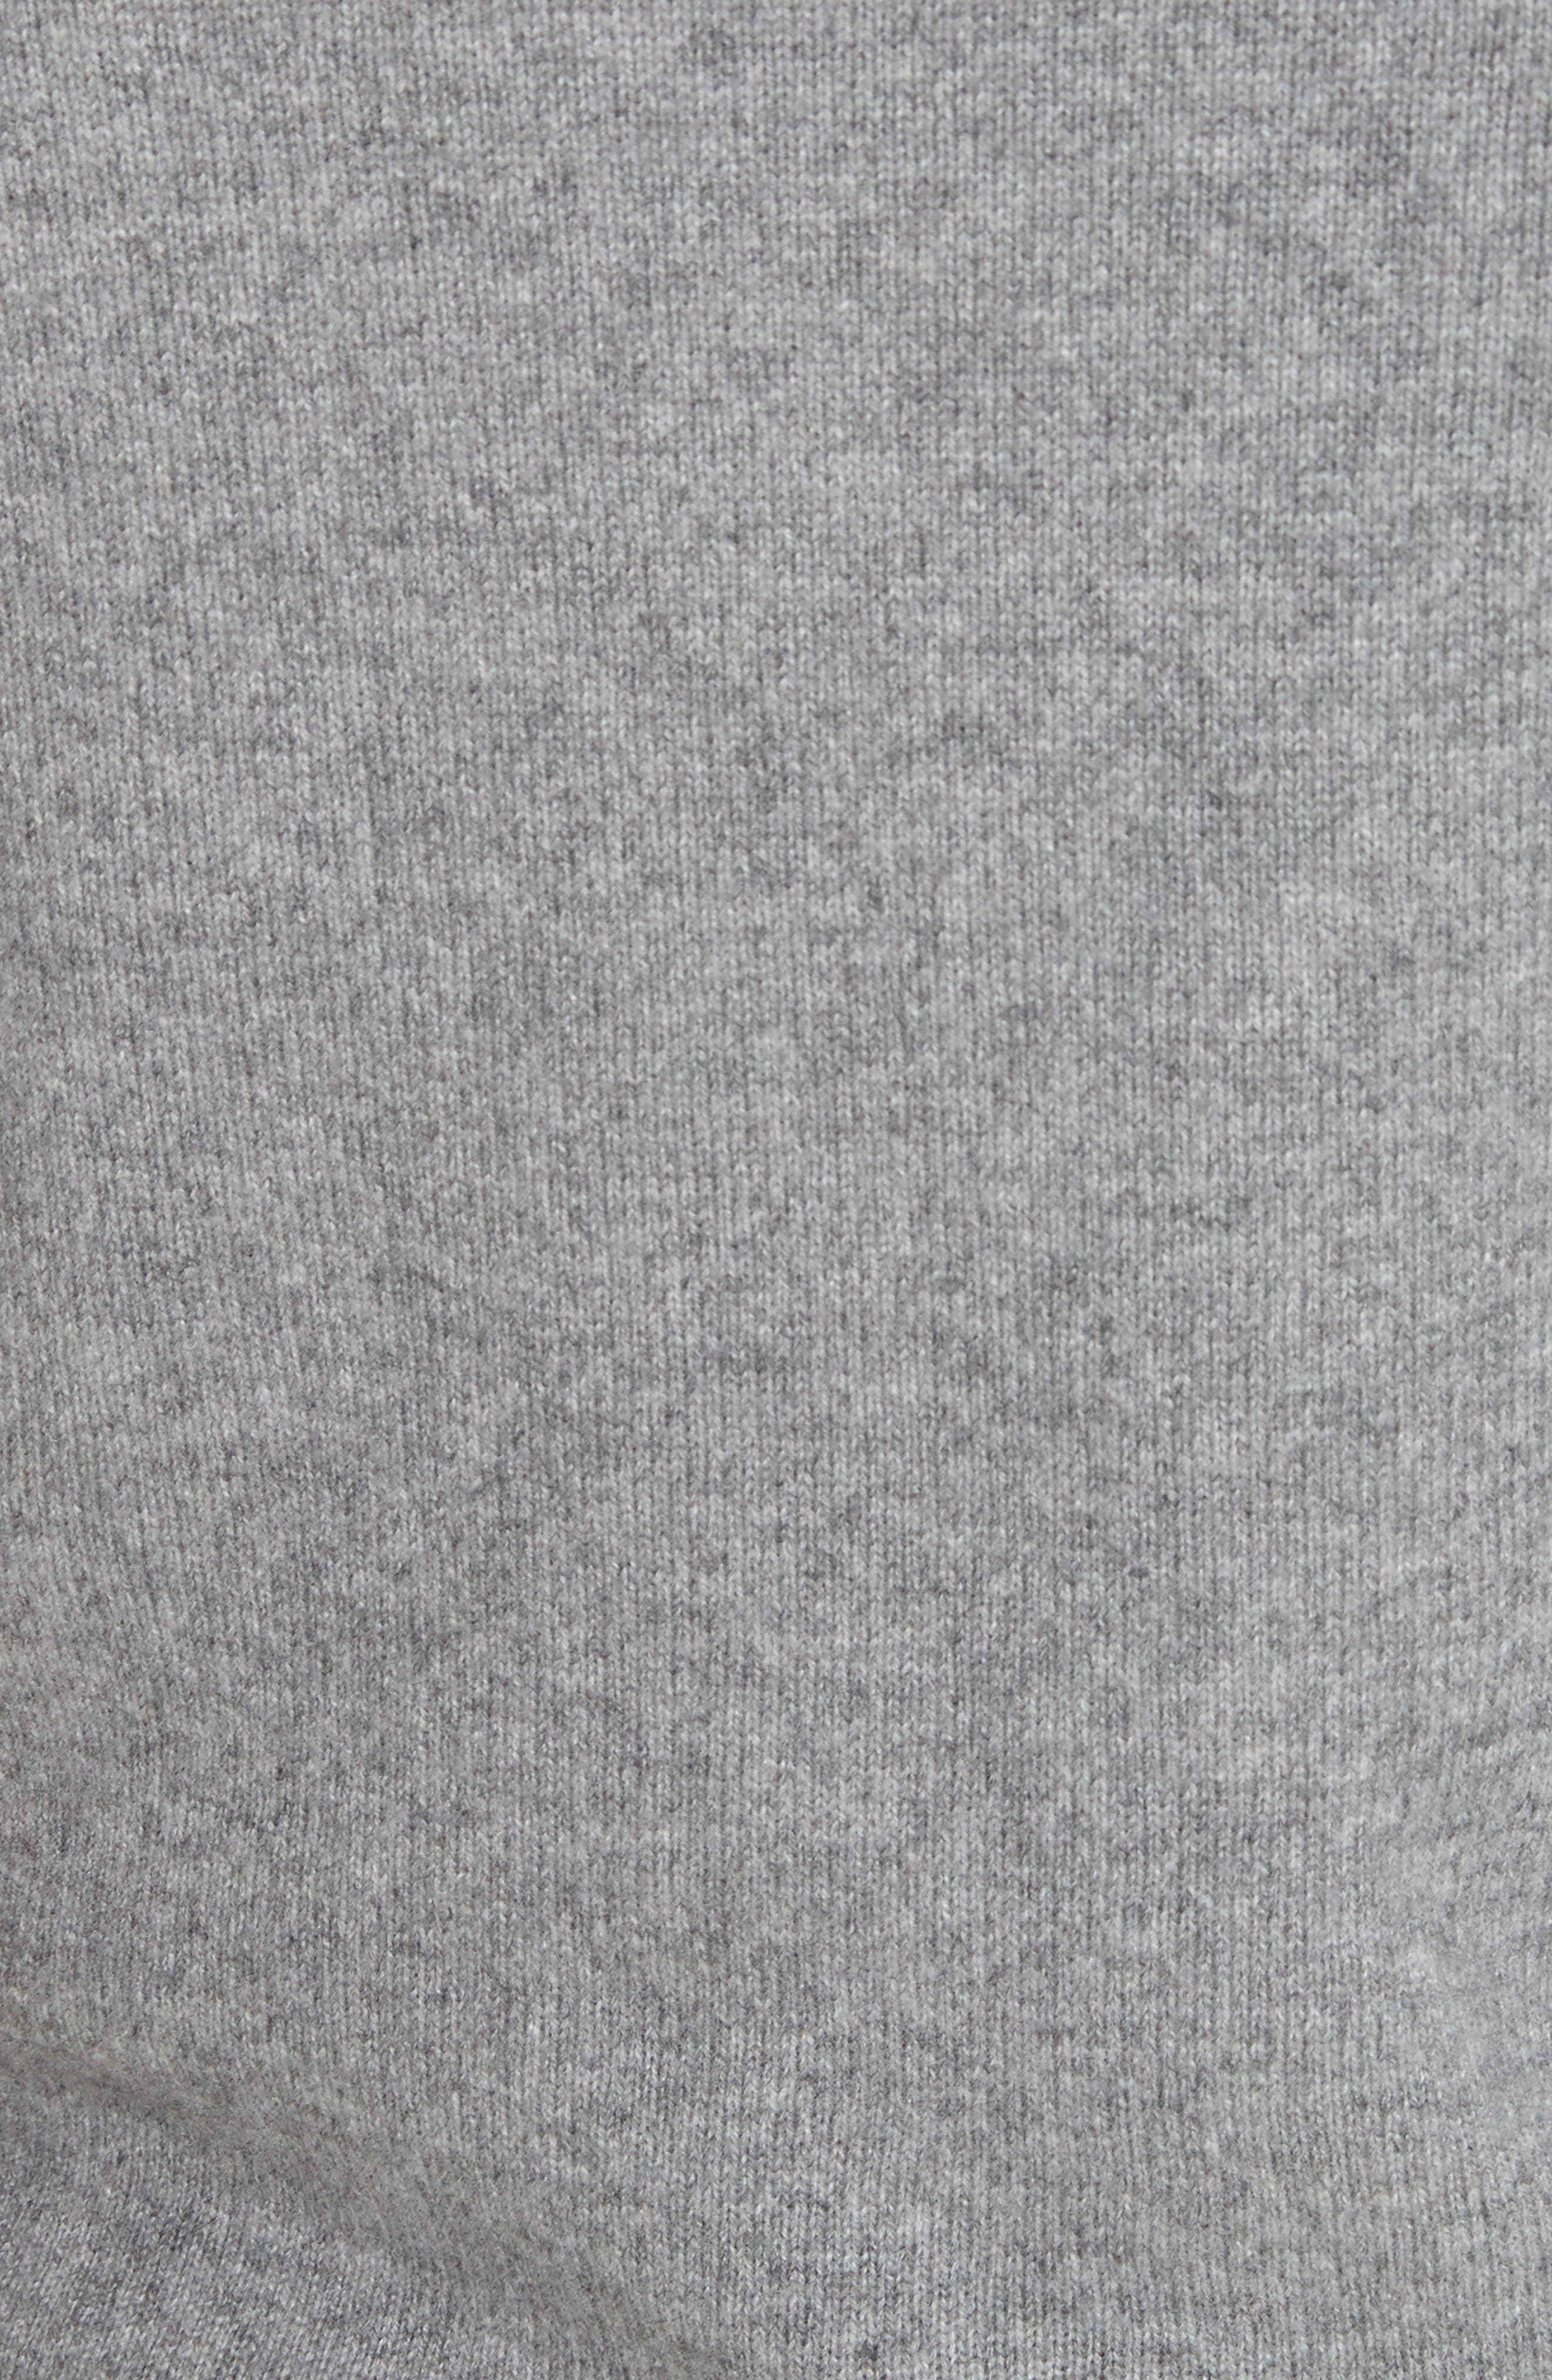 Inverted Tie Waist Wool & Cashmere Blend Sweater,                             Alternate thumbnail 5, color,                             030